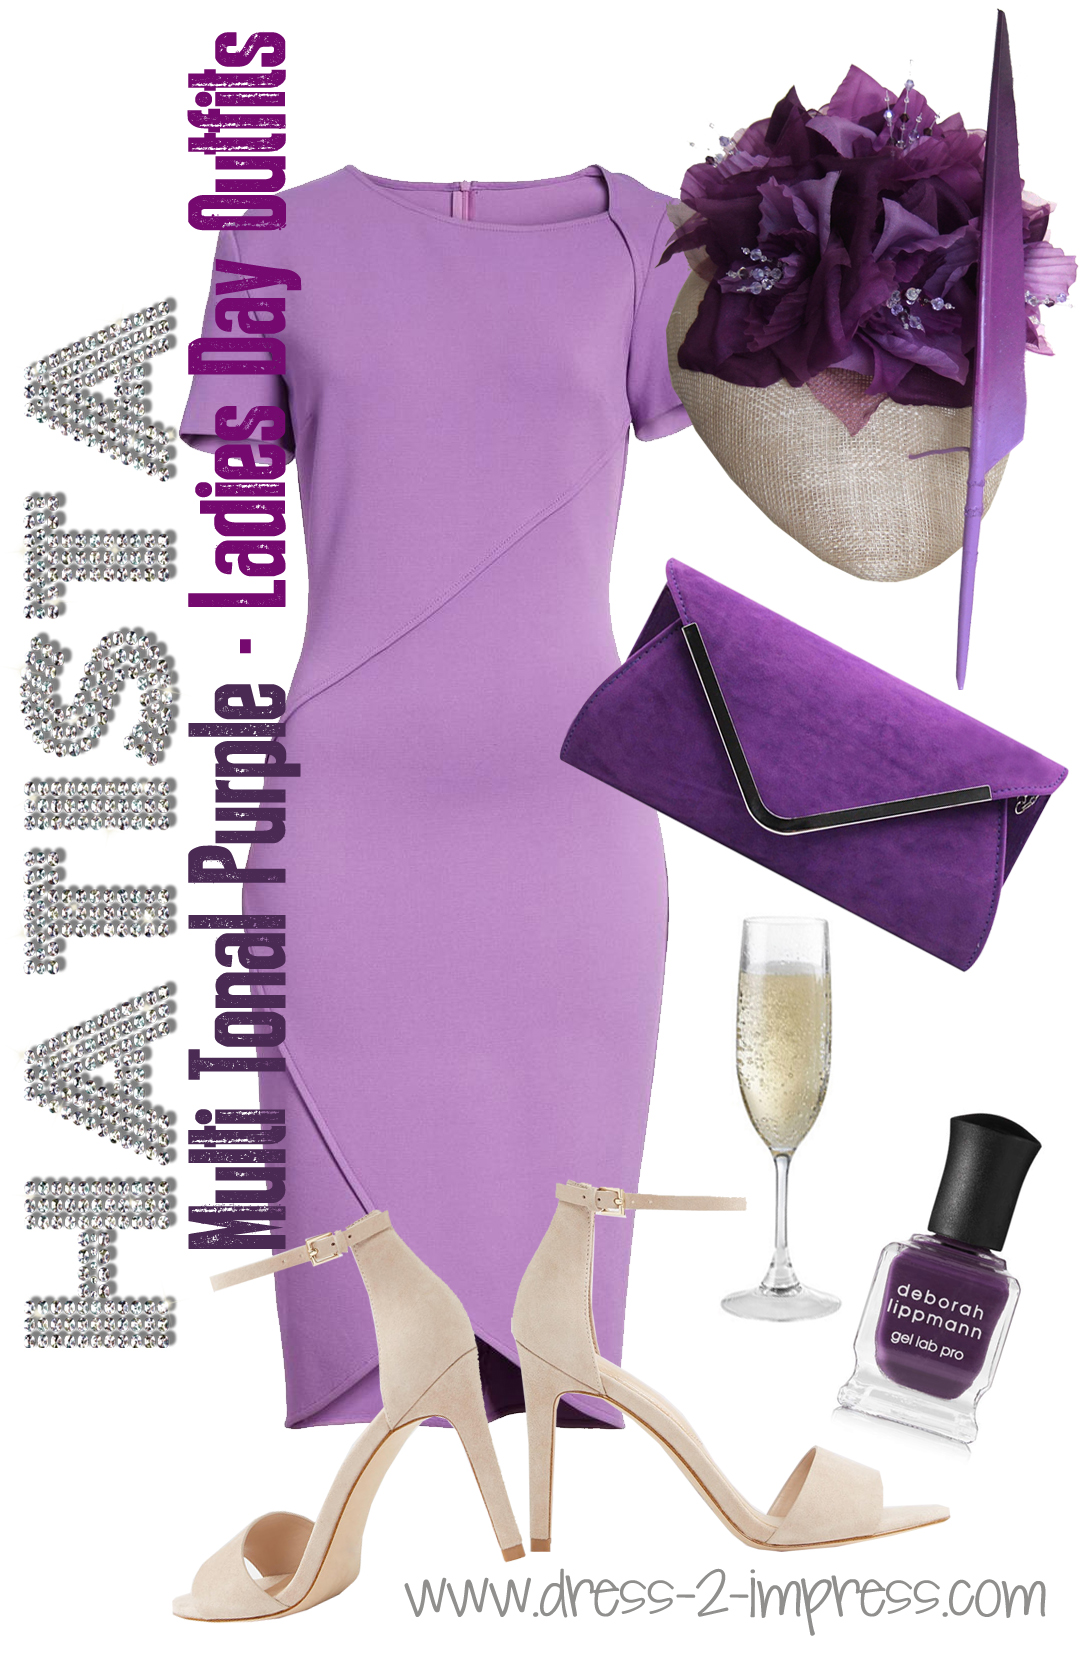 Outfit ideas for Ladies Day at the races What to wear to the Kentucky Derby. What to wear for Royal Ascot 2021. Fashions on the Field. What to wear for the Dubai World Cup 2021. What to wear for the Epsom Derby 2021. What to wear for the Melbourne Cup 2020 #kentuckyderby #derbyoutfits #royalascot #ladiesday #ascotoutfits #outfitideas #fashionista #ontheblog